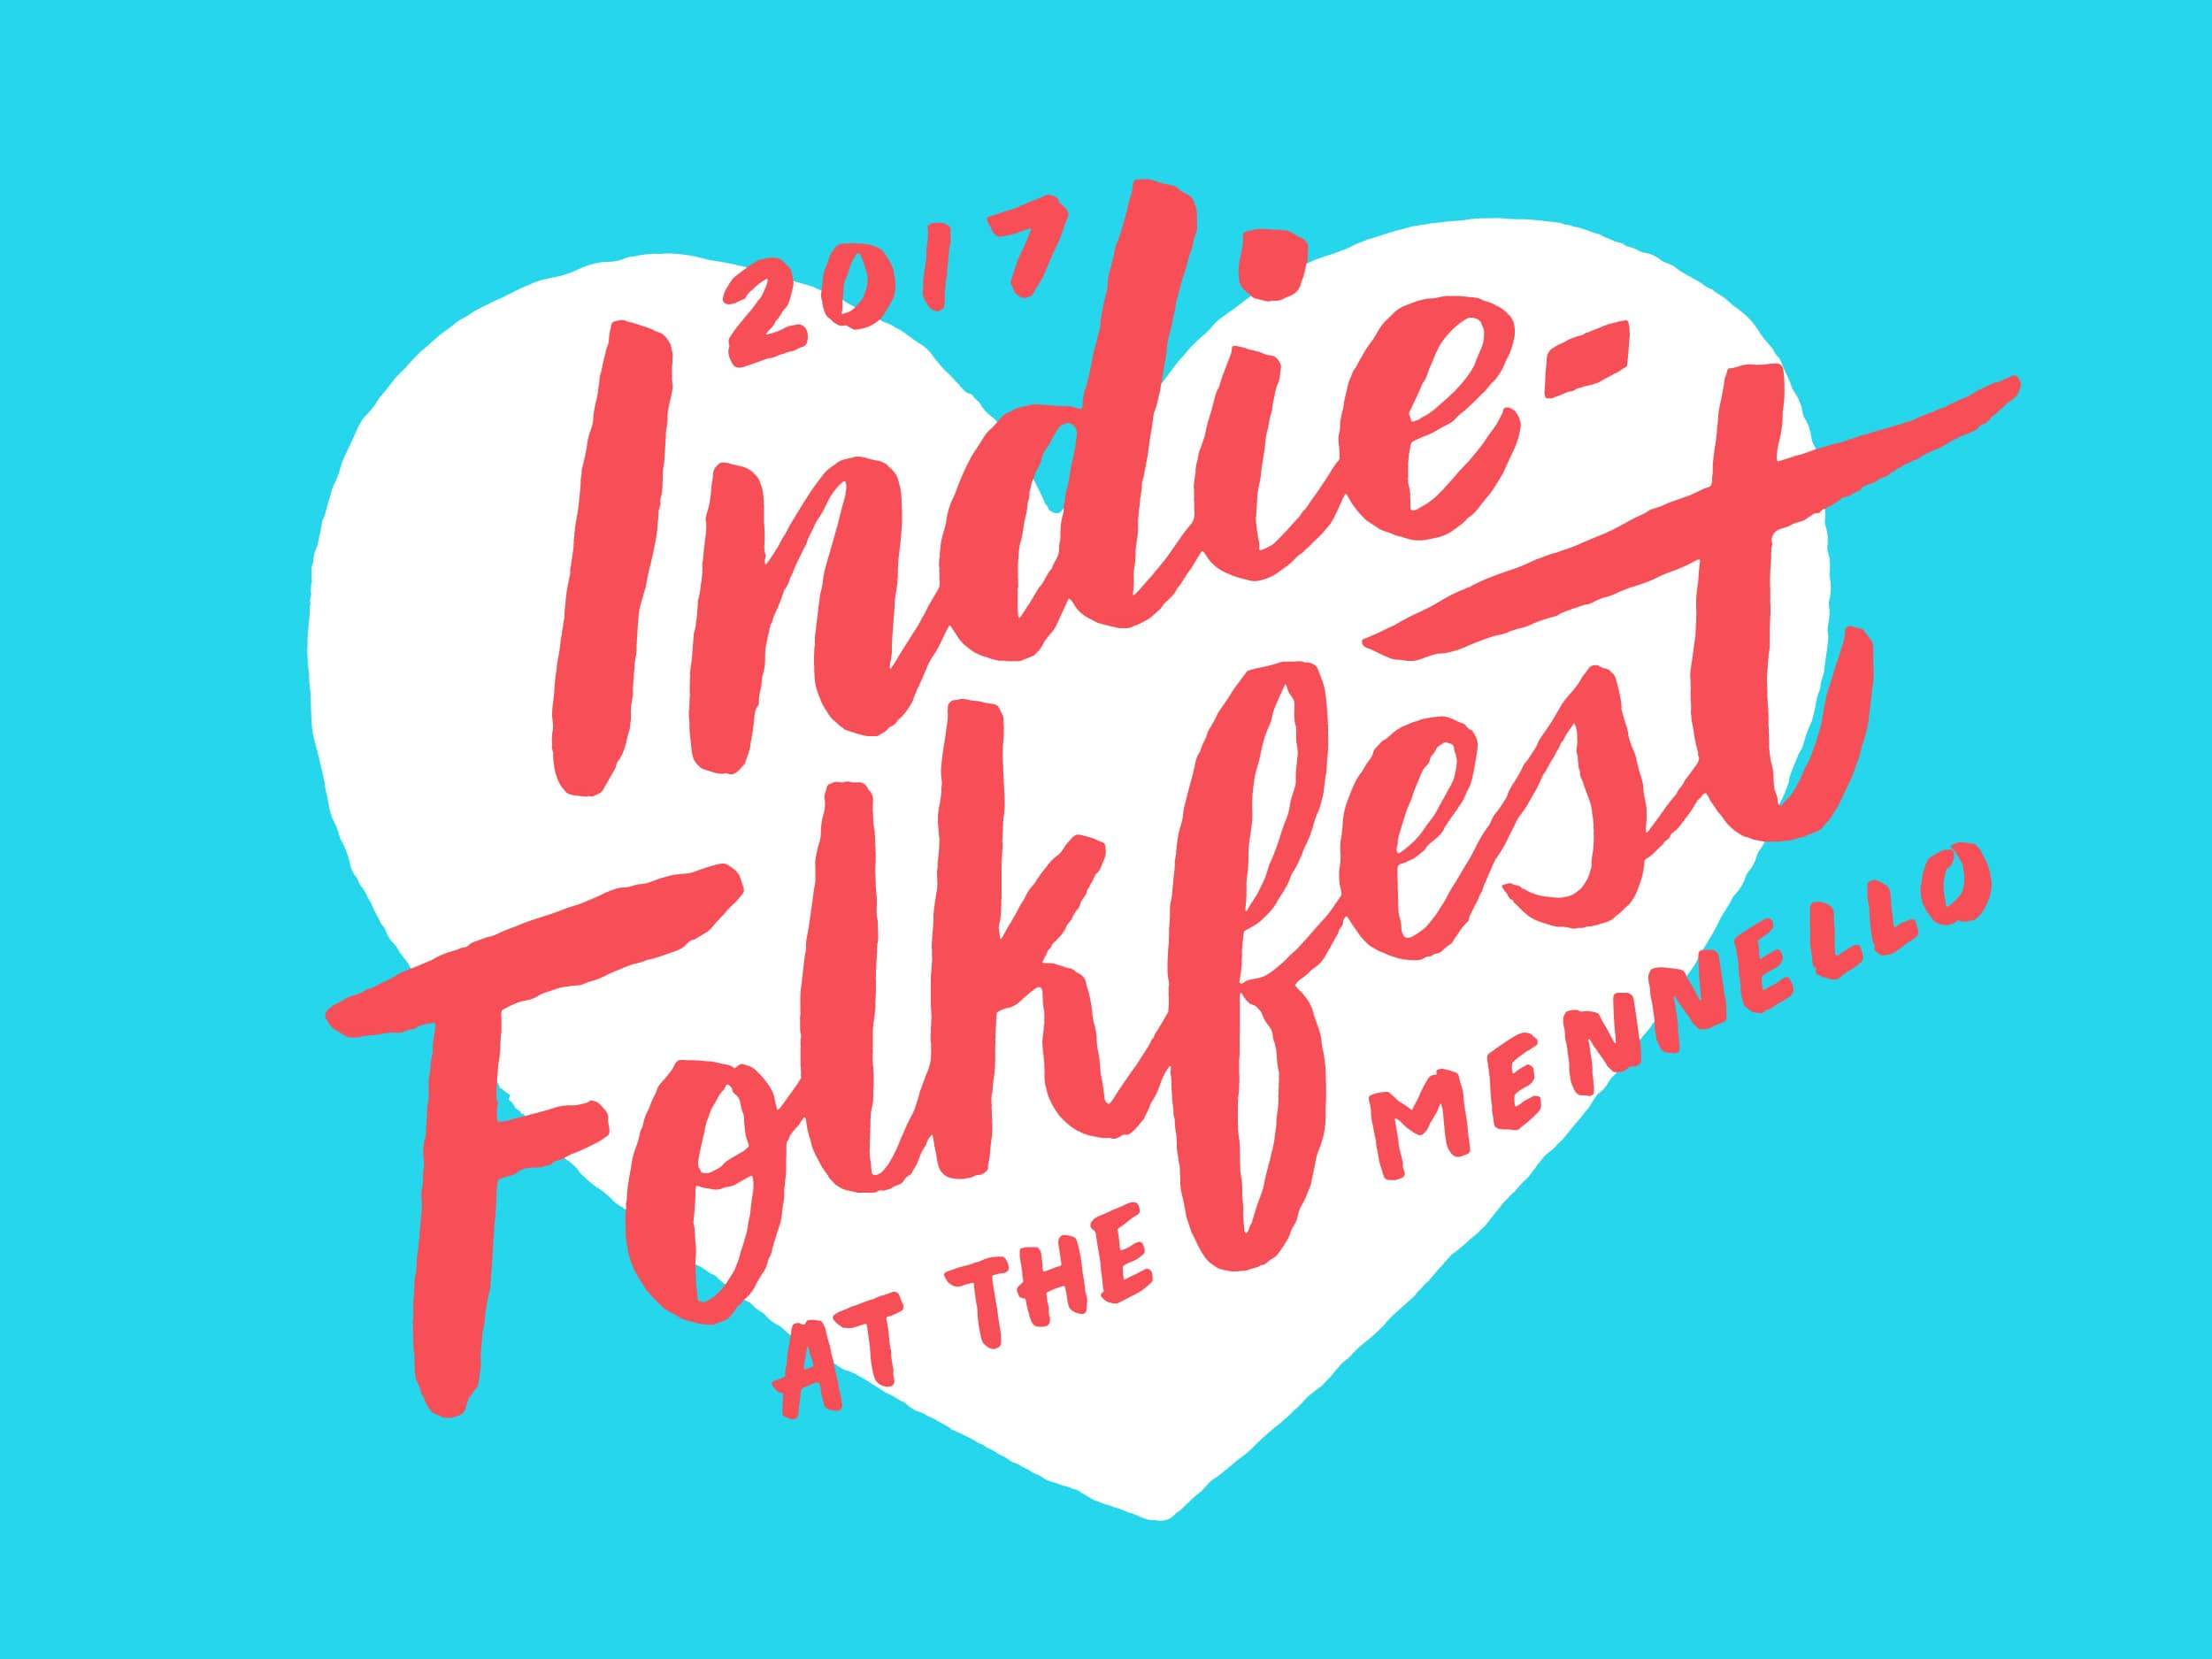 Indie-Folkfest hand lettered logo by Hillery Powers for Mennello Museum indie festival